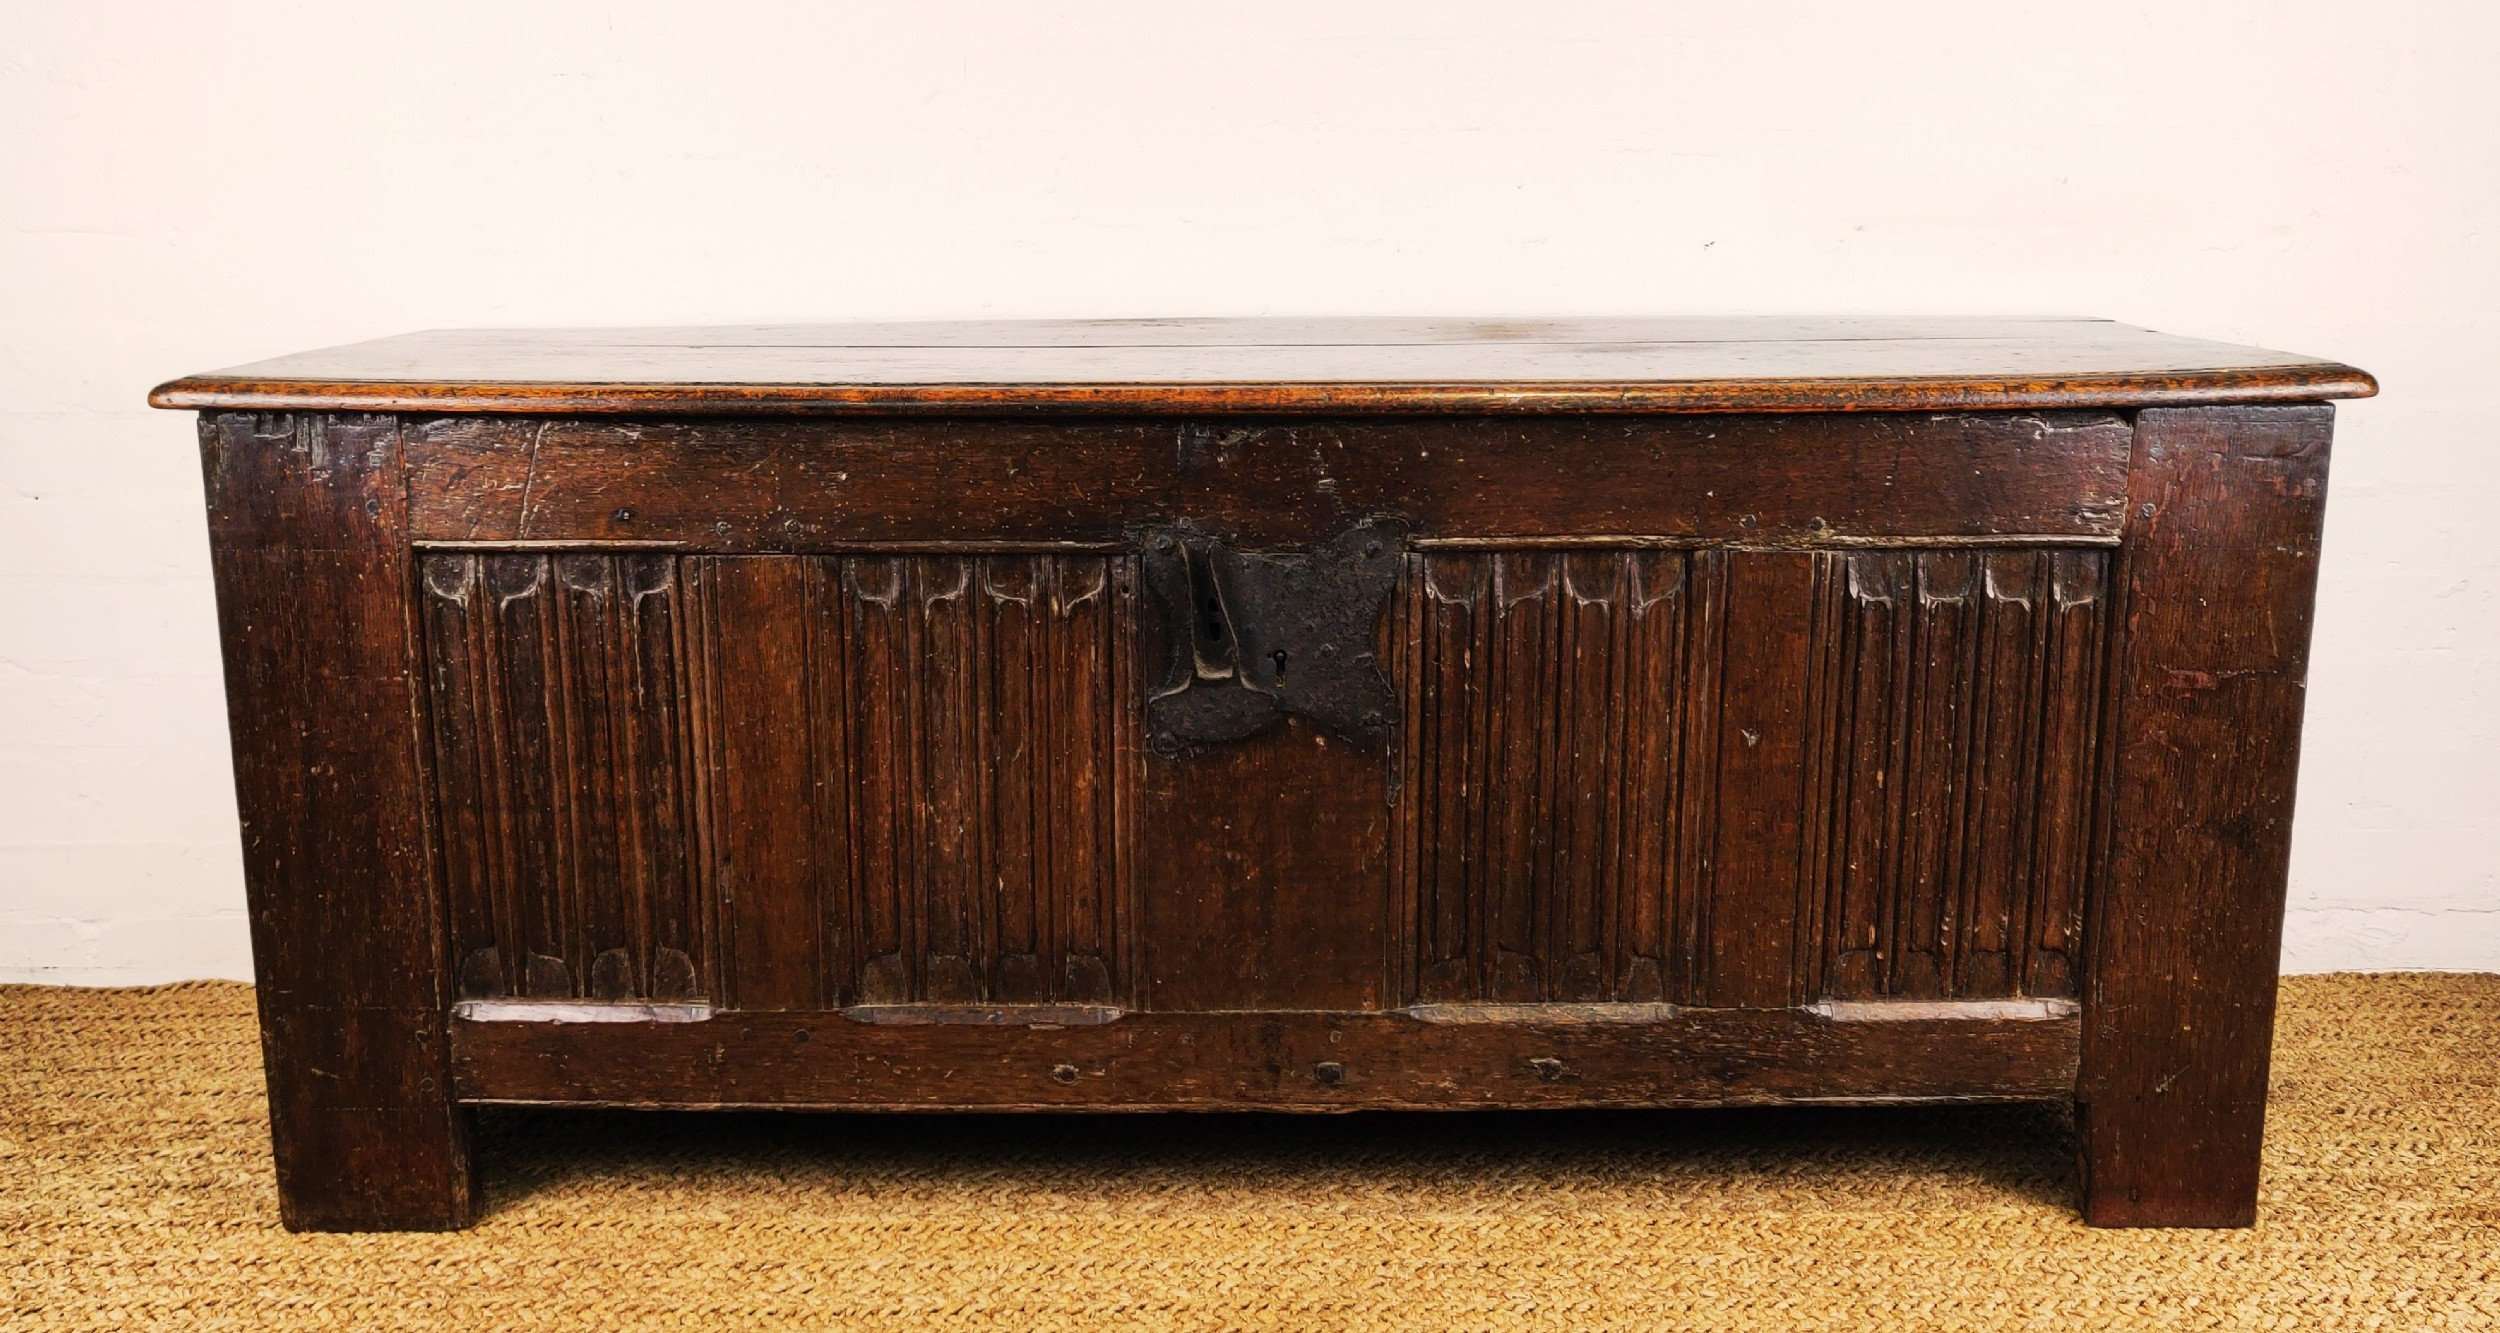 a large 16th century and later westphalian coffer